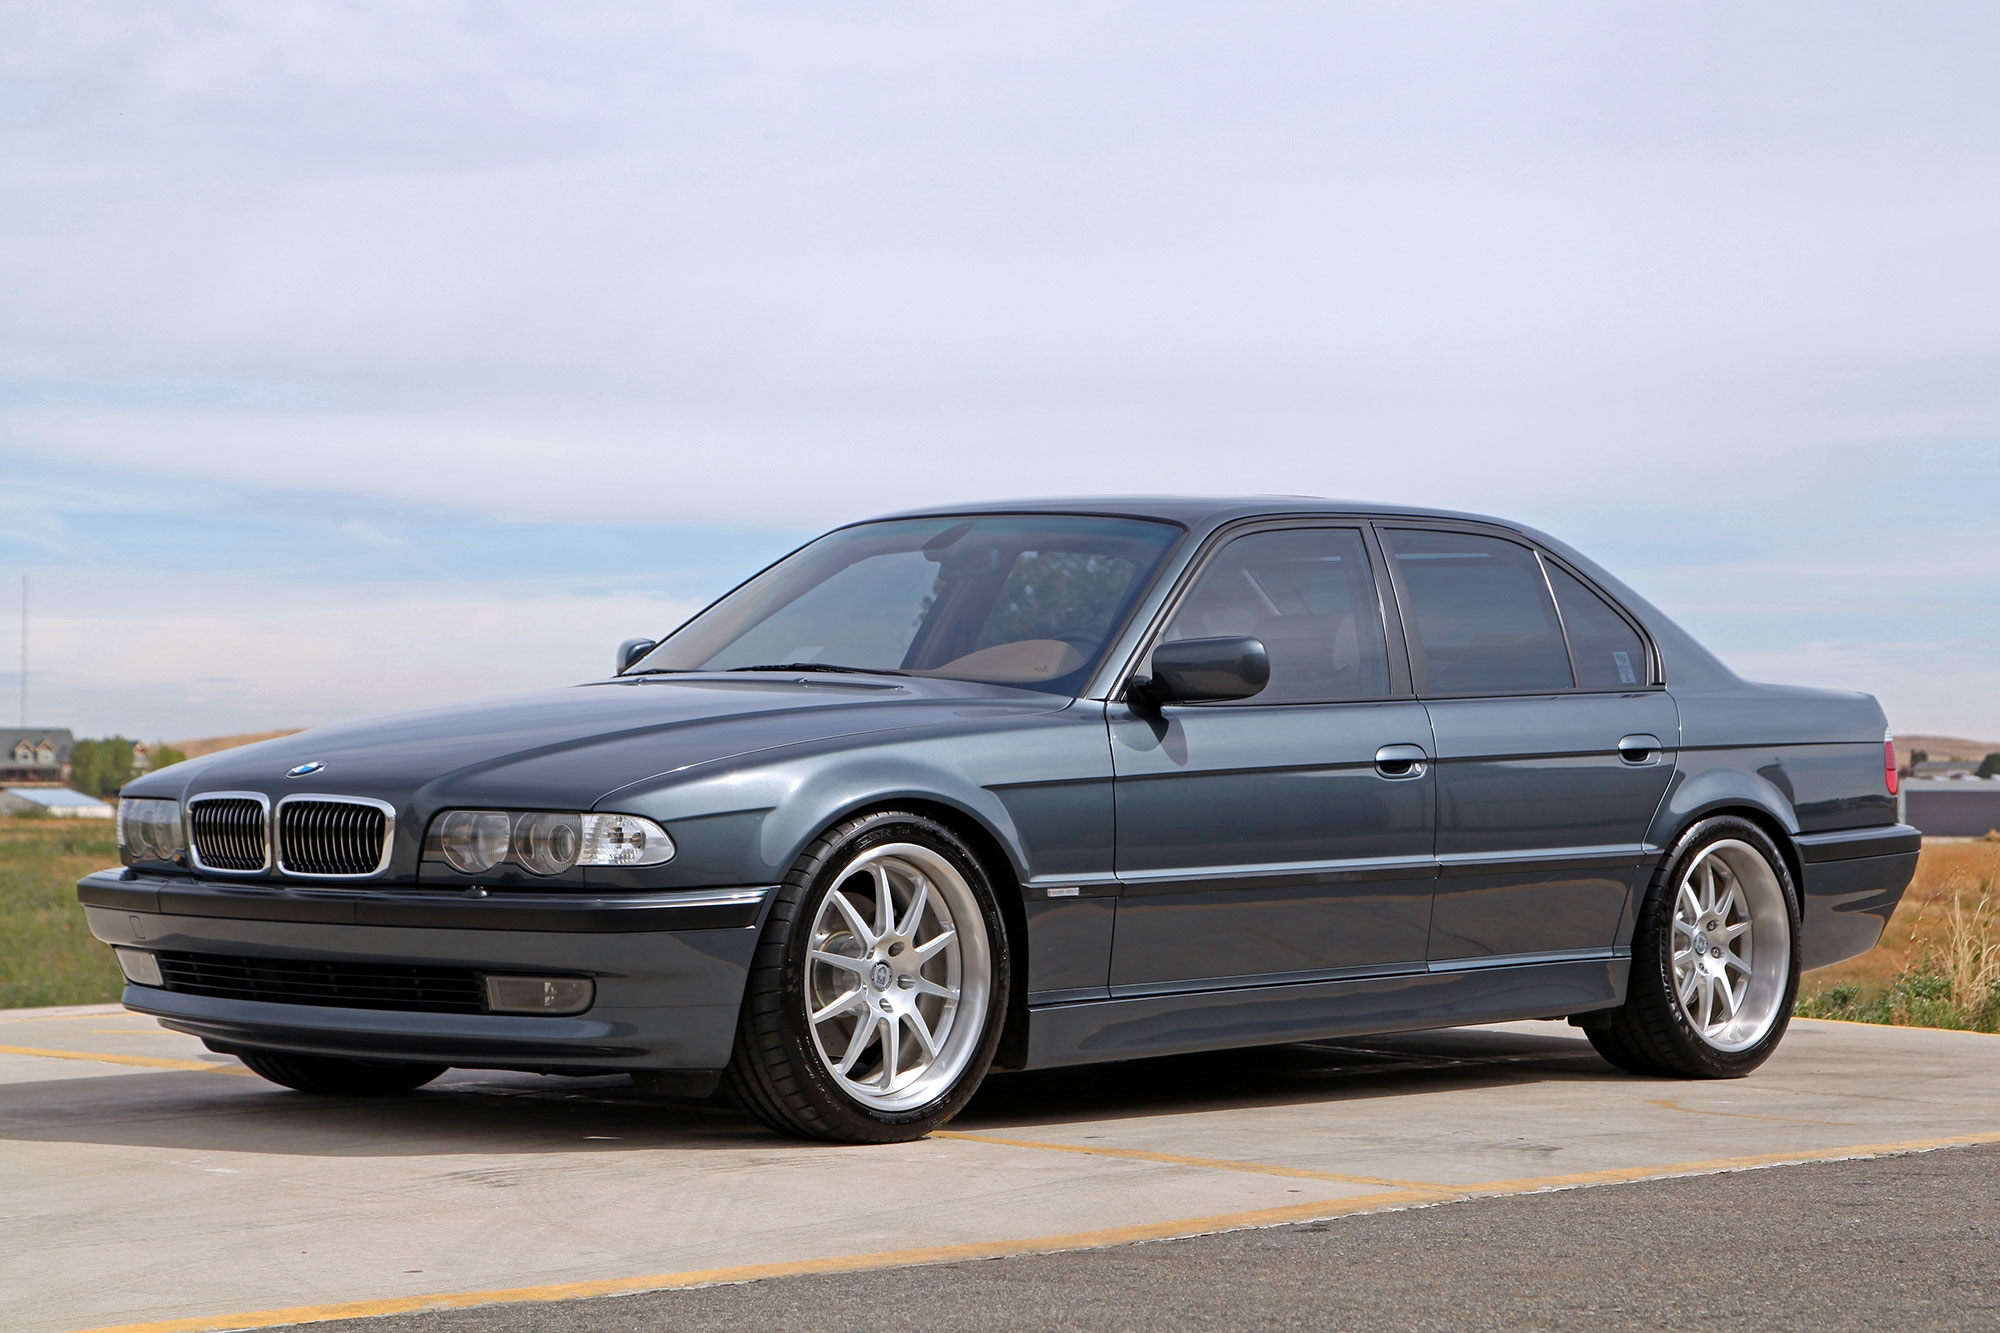 2001 bmw 740i m sport glen shelly auto brokers denver colorado. Black Bedroom Furniture Sets. Home Design Ideas